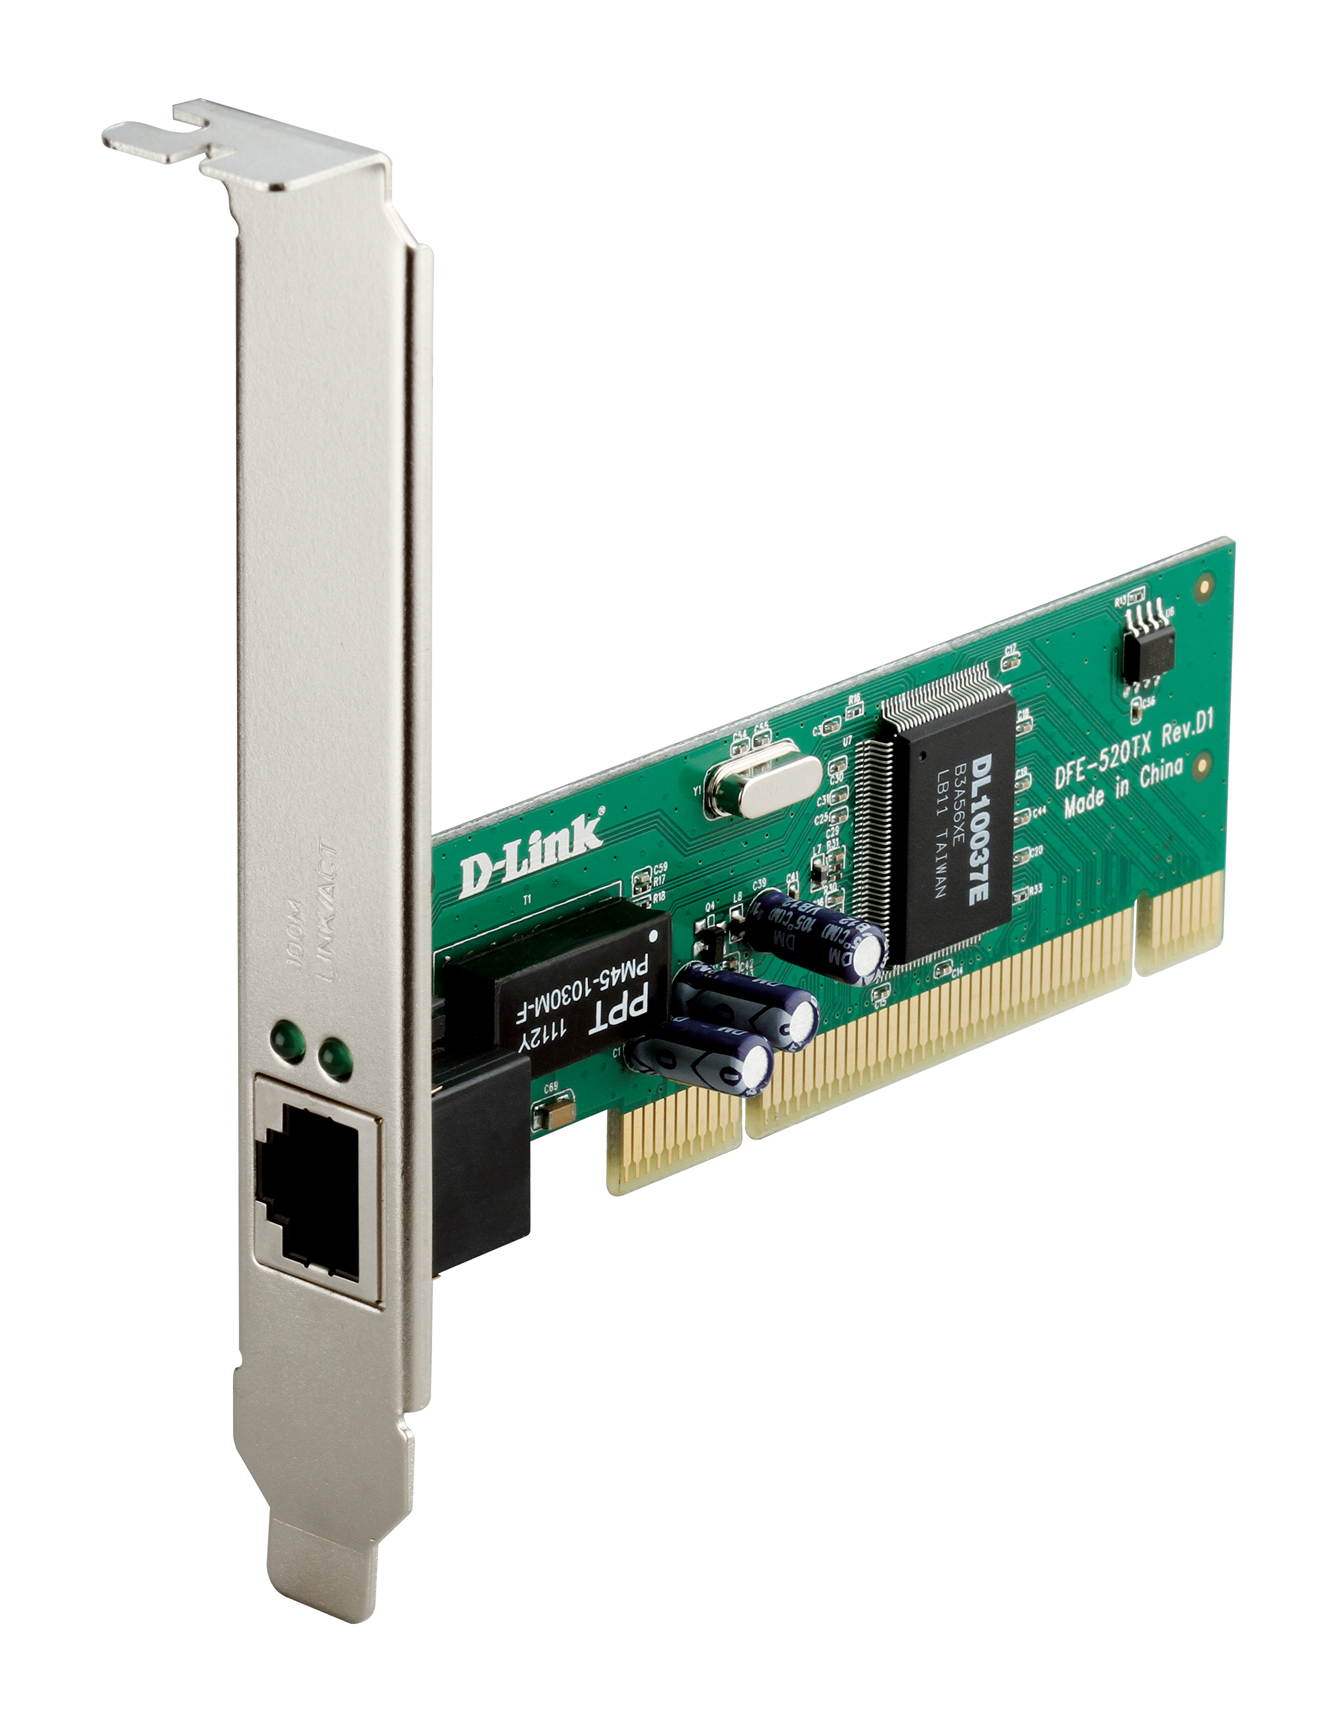 DFE-520TX NETWORK CARD DRIVERS DOWNLOAD FREE